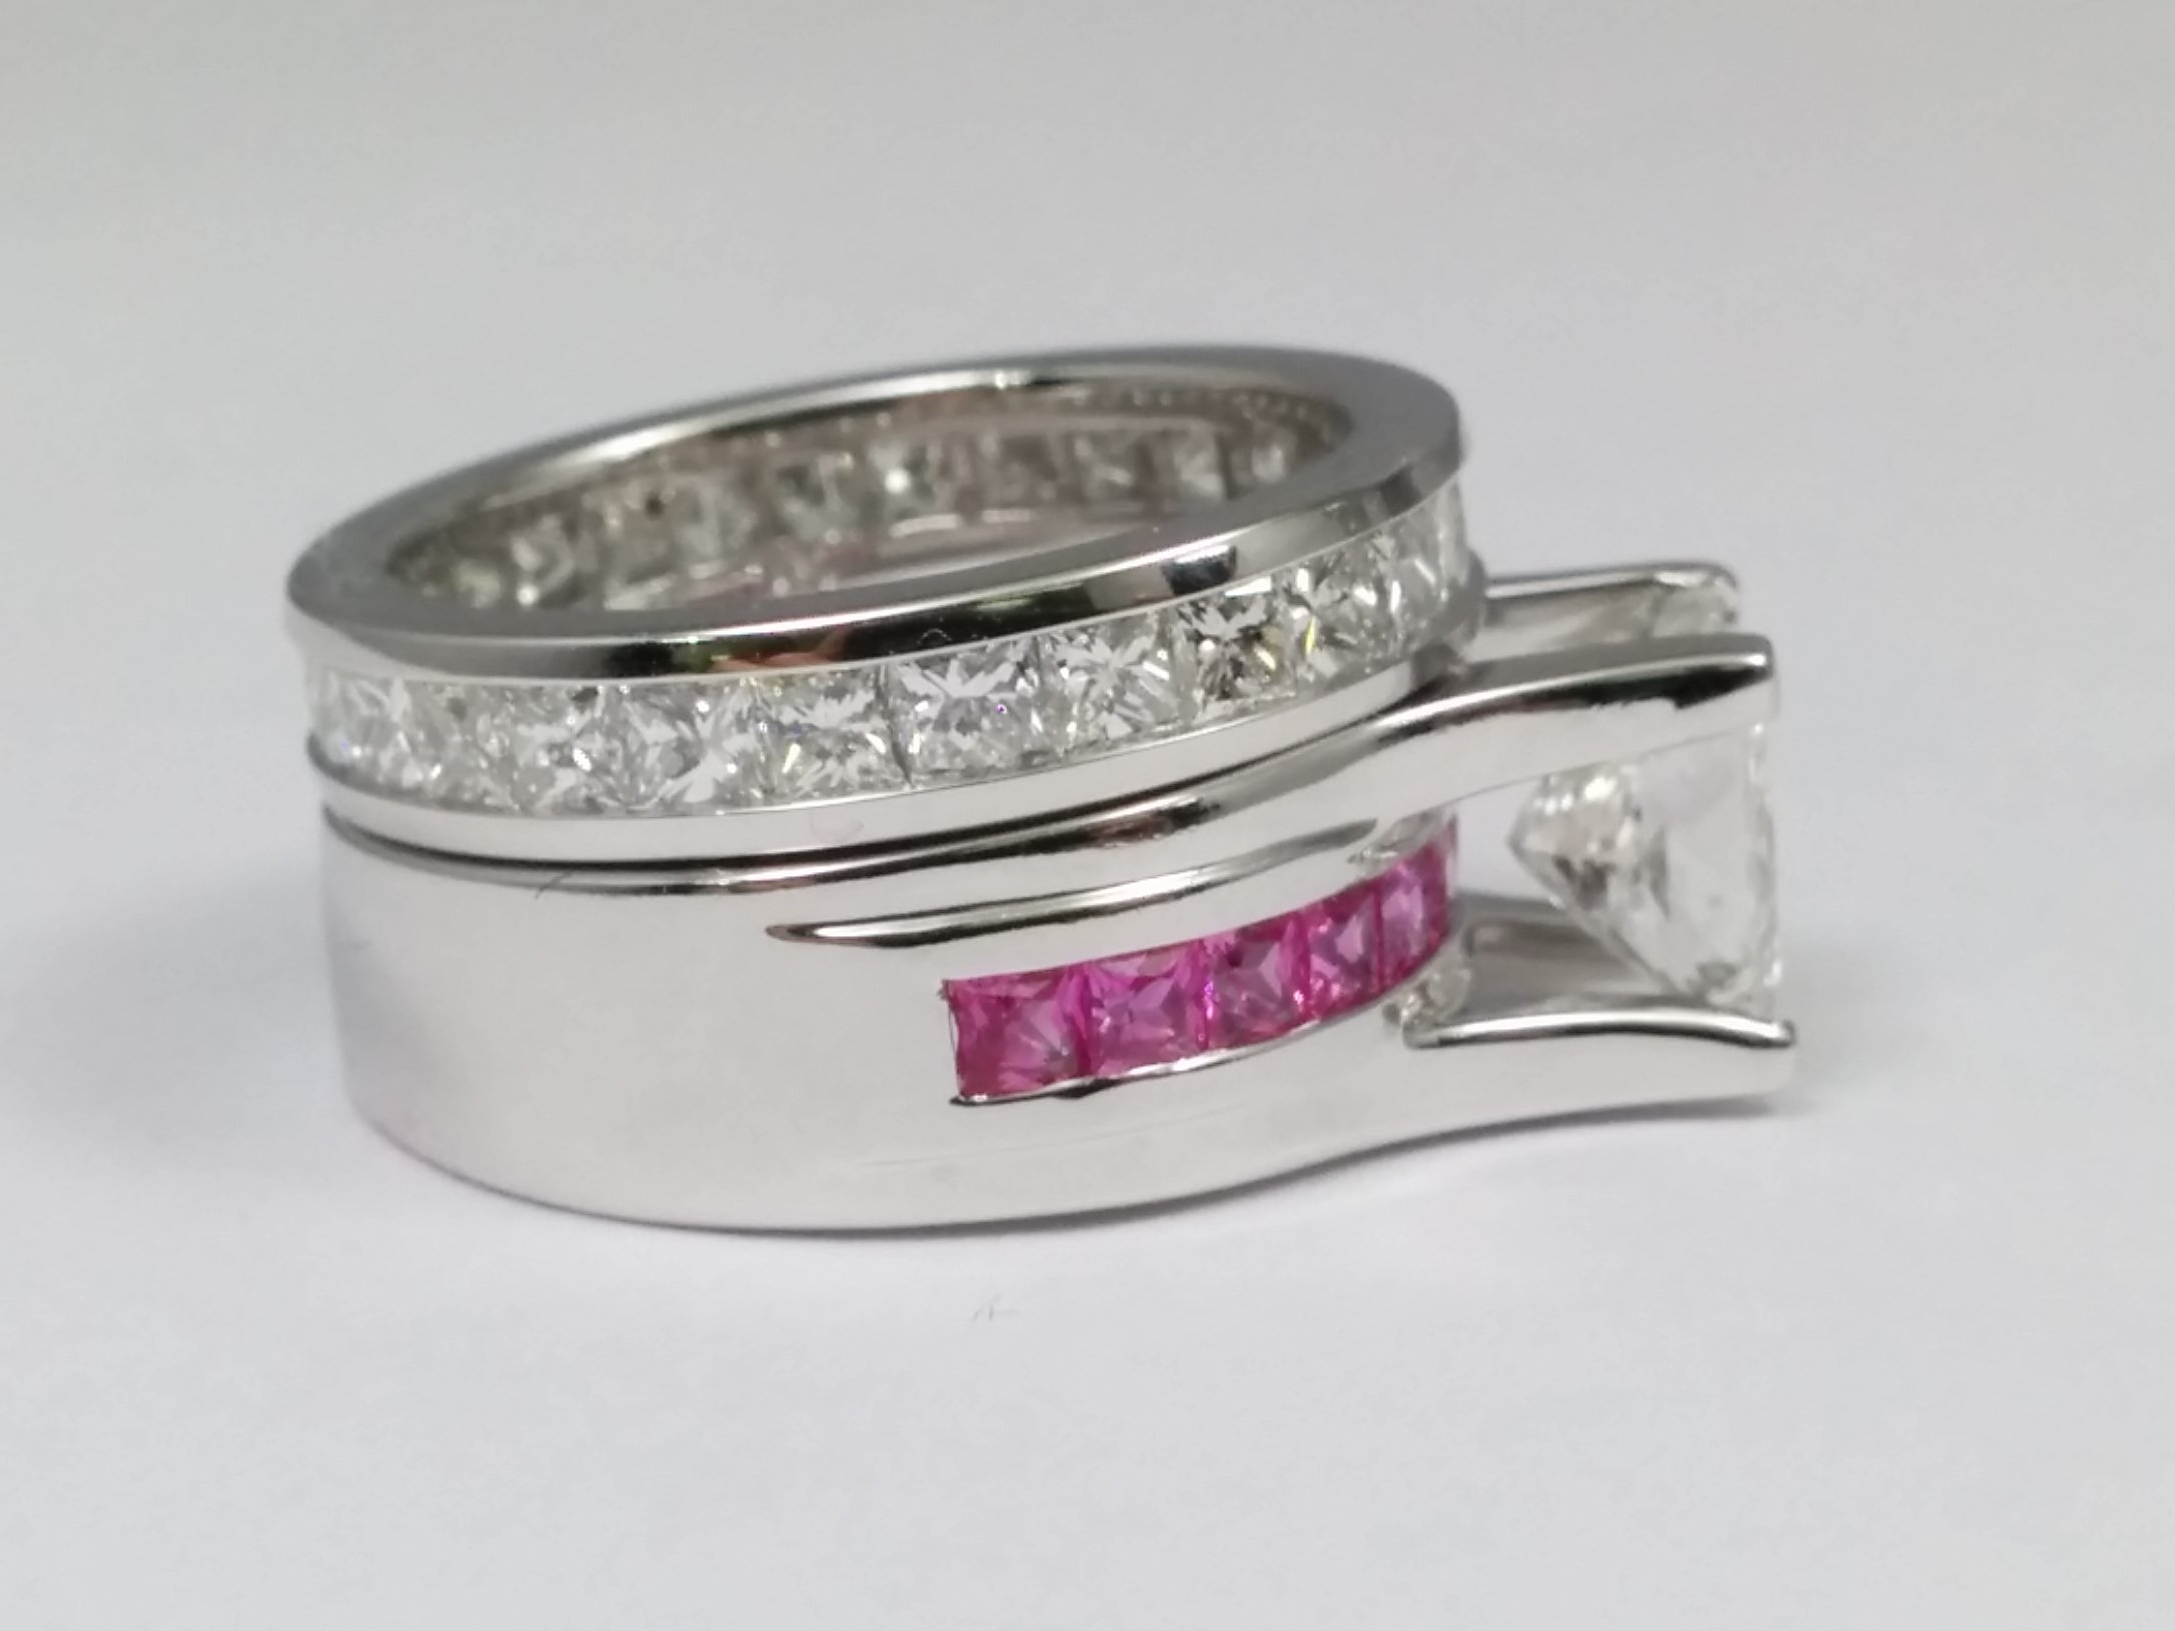 Princess Cut Diamond Bridge Engagement Ring Setting with Pink Sapphire and Diamond Eternity Band In 14K White Gold